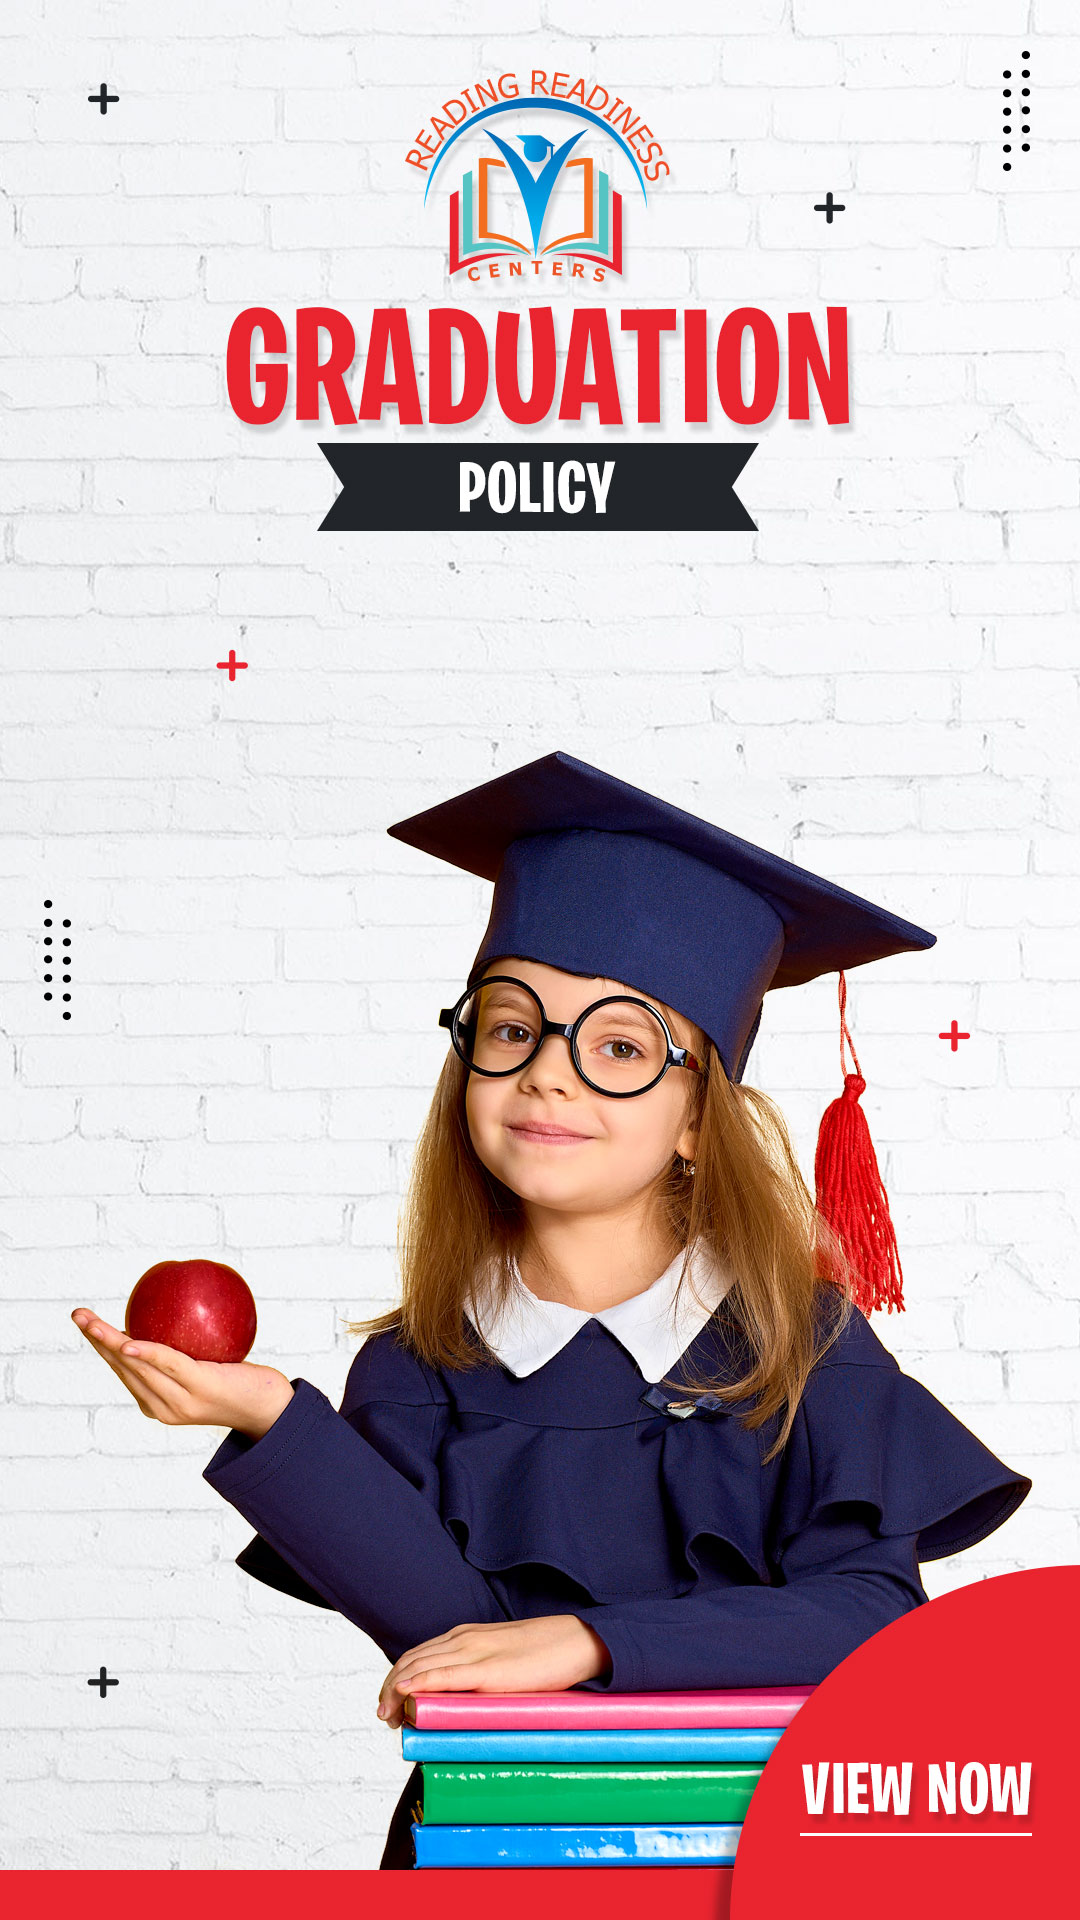 banner graduation policy